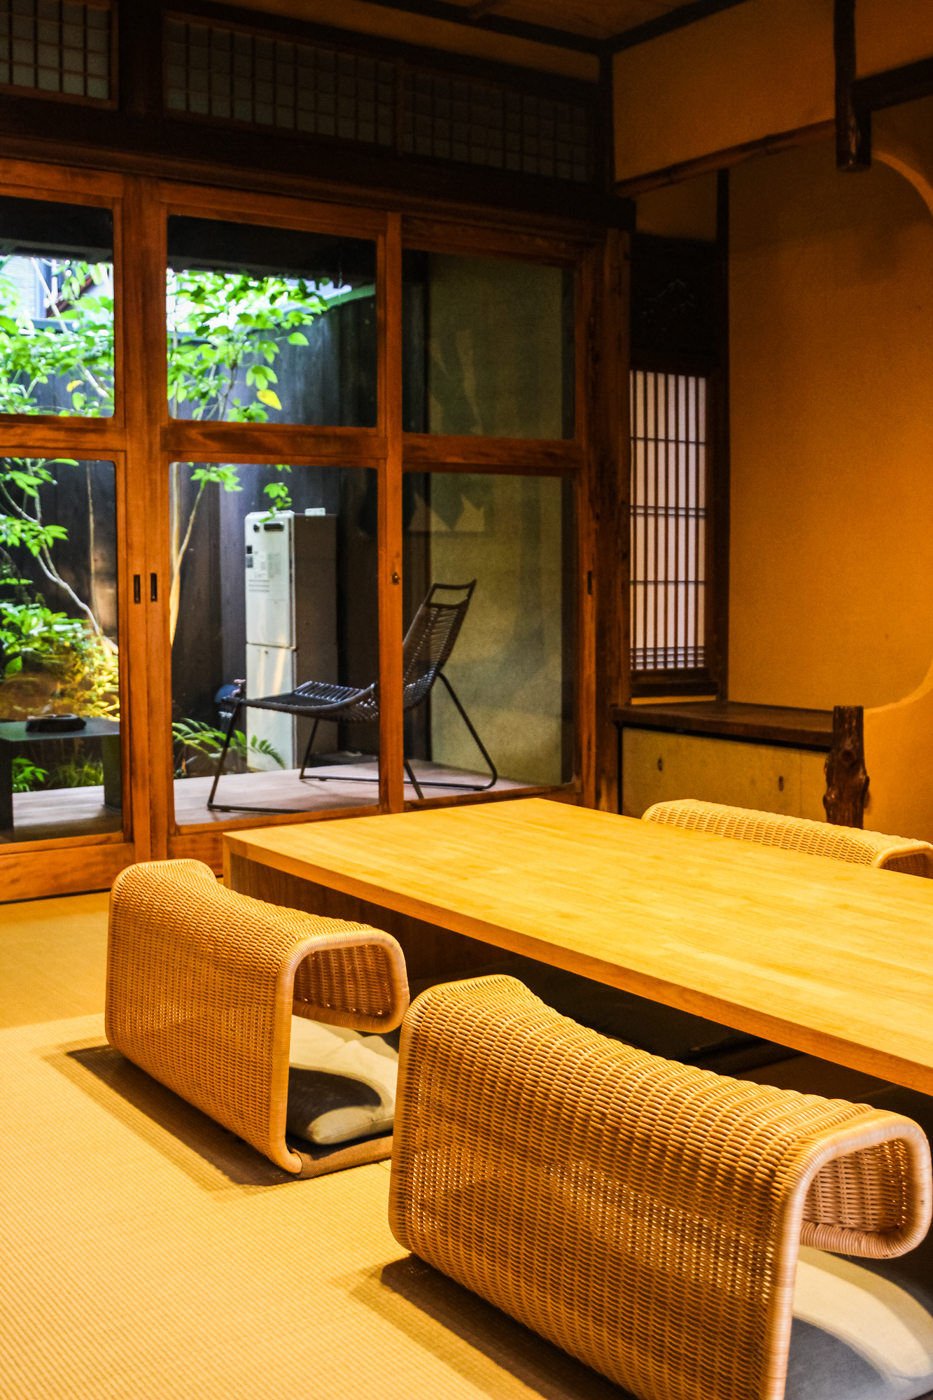 maana-homes-kyoto-japan-casper-hotel-93.jpg